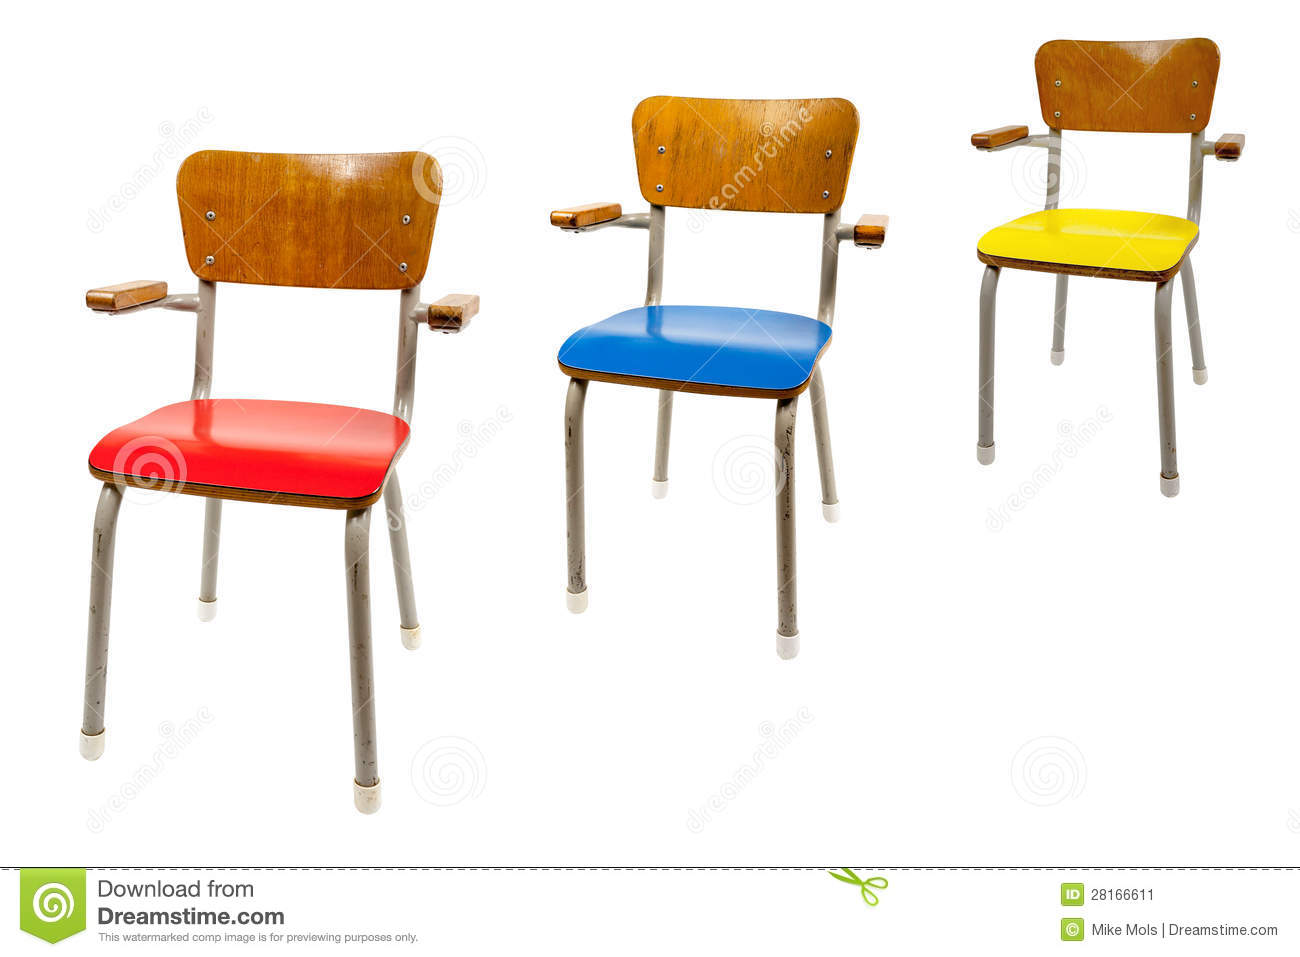 bauhaus by sled german nothelfer chairs school at chair karl